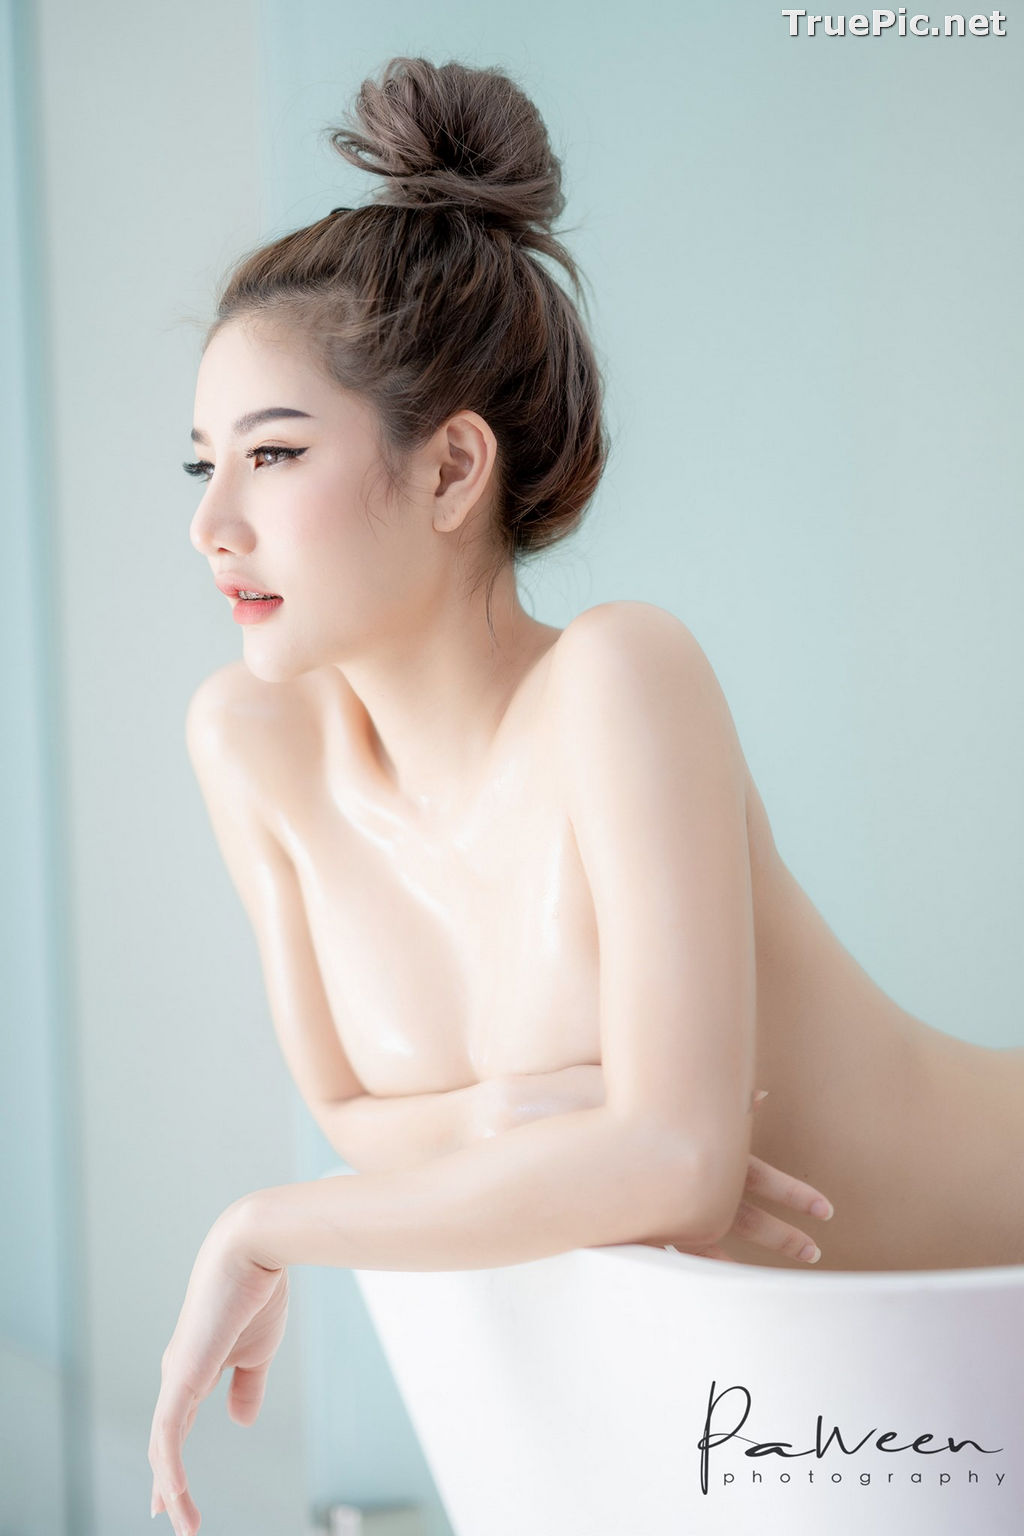 Image Thailand Model - Atittaya Chaiyasing - Take Shower After a Nice Day - TruePic.net - Picture-5